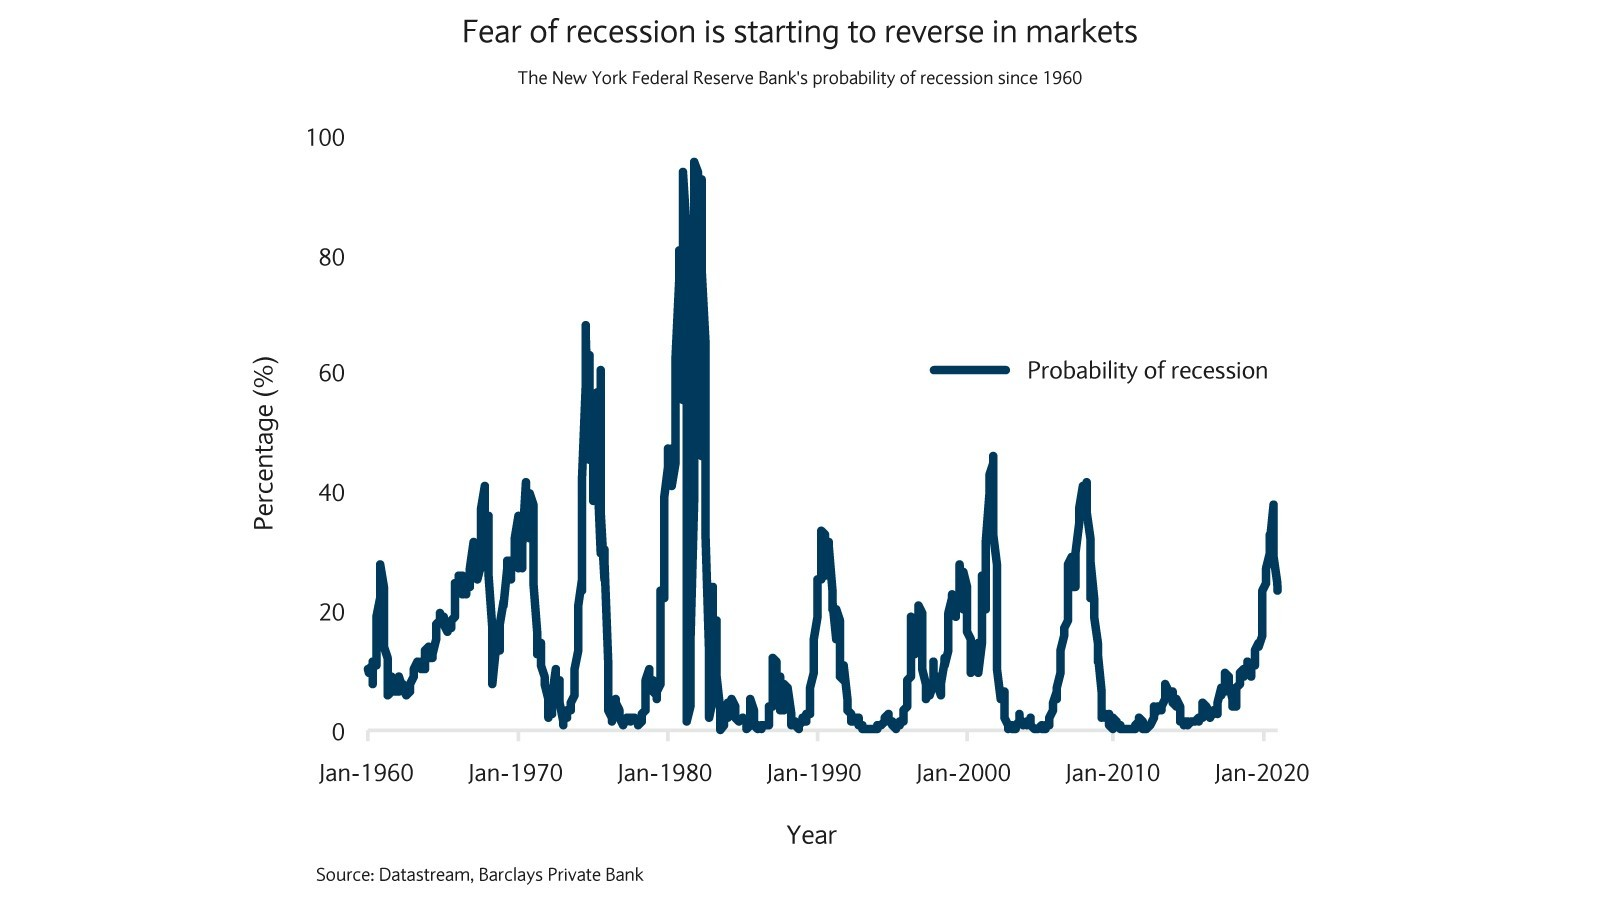 Fear of recession is starting to reverse in markets